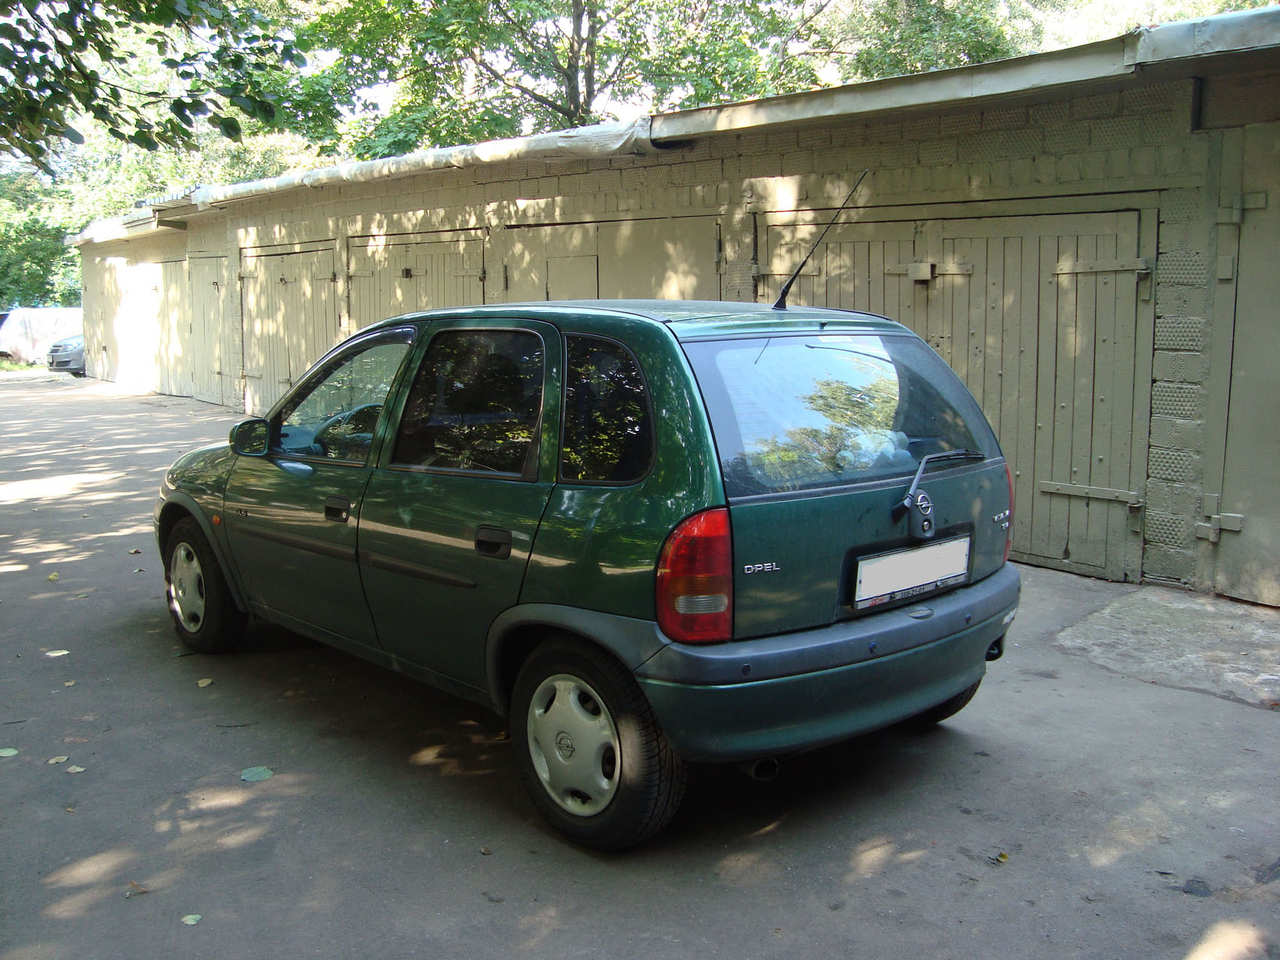 used 1998 opel corsa photos 1400cc gasoline ff automatic for sale. Black Bedroom Furniture Sets. Home Design Ideas